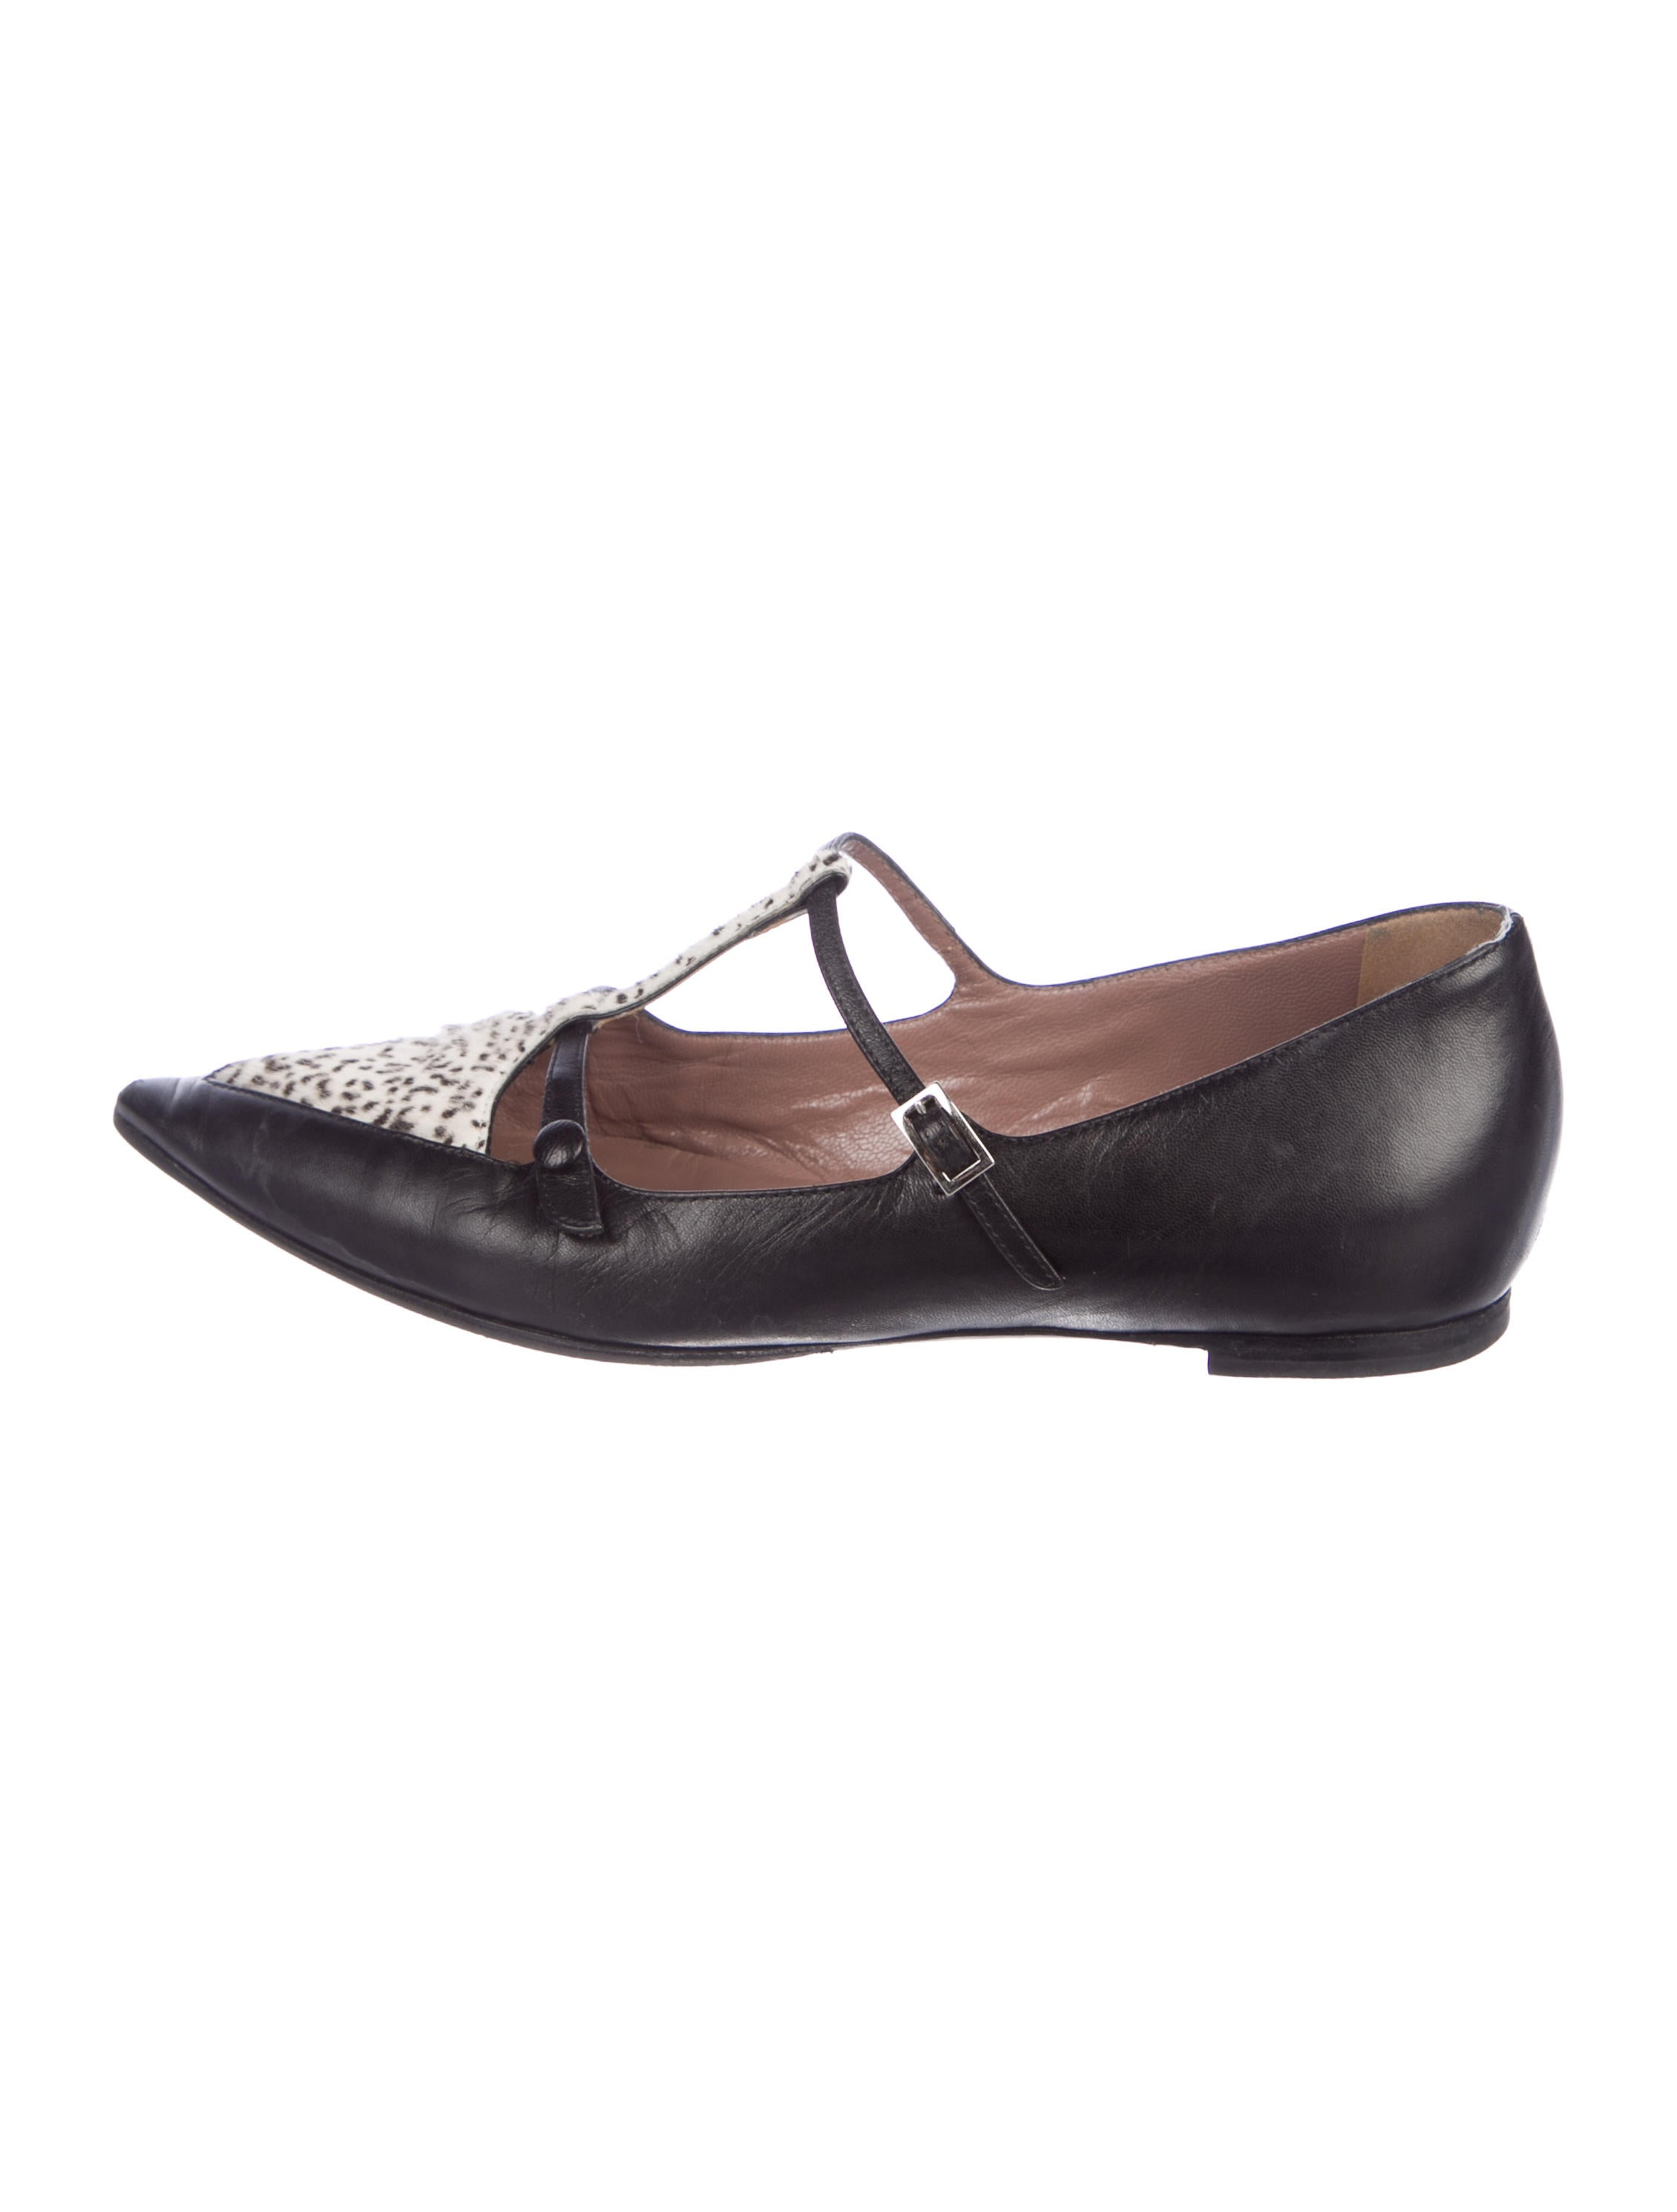 outlet great deals Tabitha Simmons Calf Hair T-Strap Flats free shipping outlet locations buy cheap many kinds of 4RskN7i